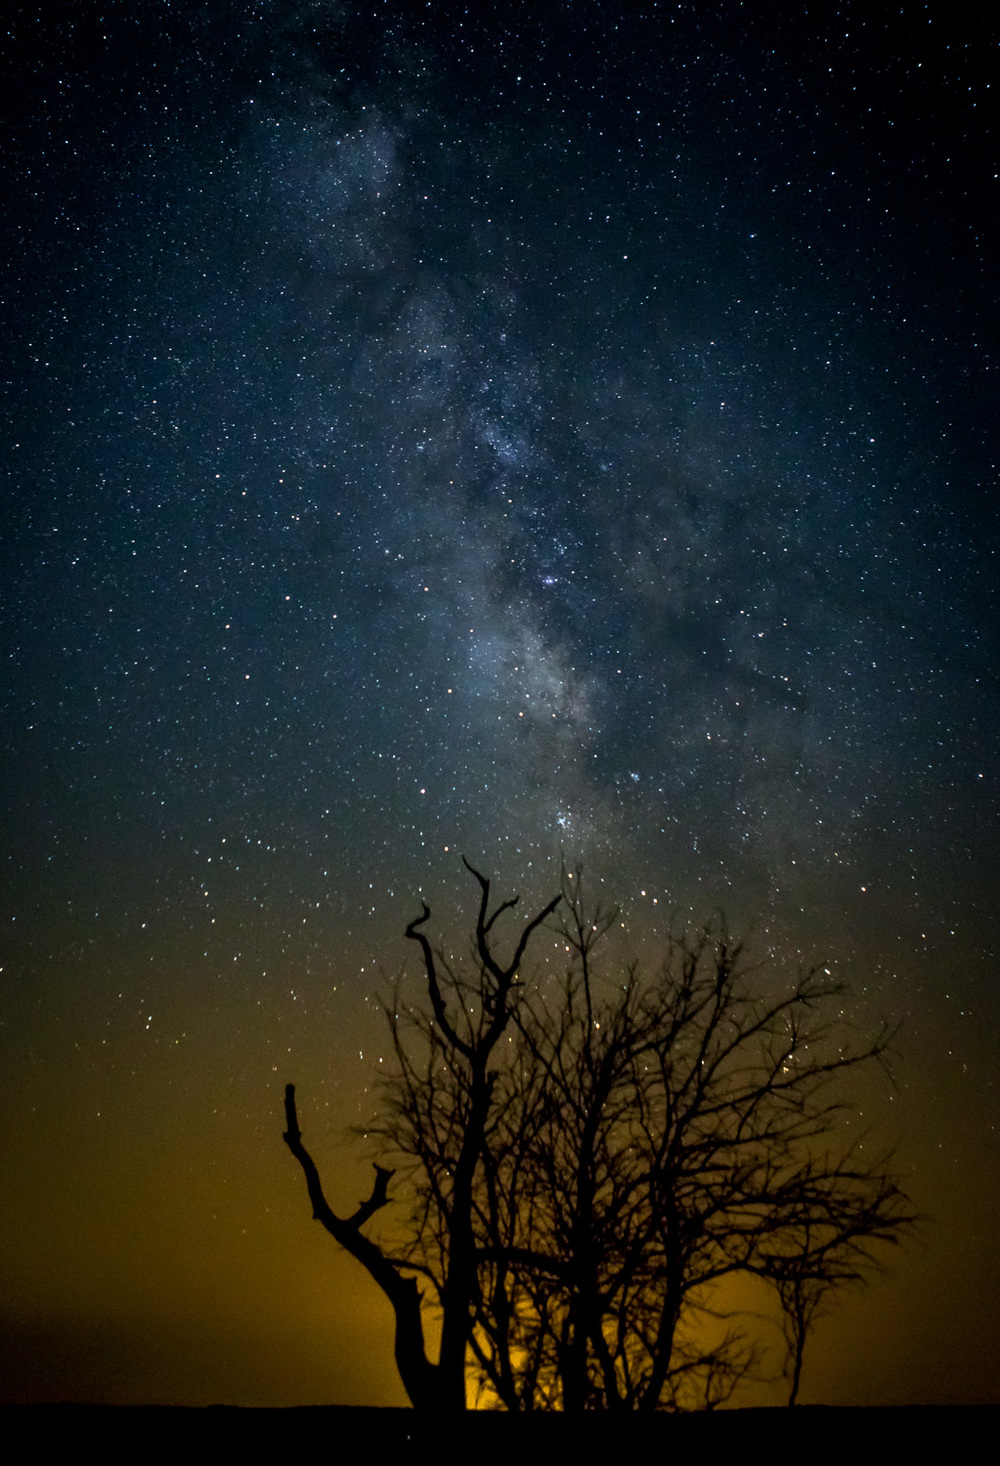 And this was the shot that we came for. Interesting foreground object. Milky Way in the background. Next time around, i'll try to get that darn tree in focus as well. I may edit the heck out of this and do so later. But... I'm really happy with the way this one looks.